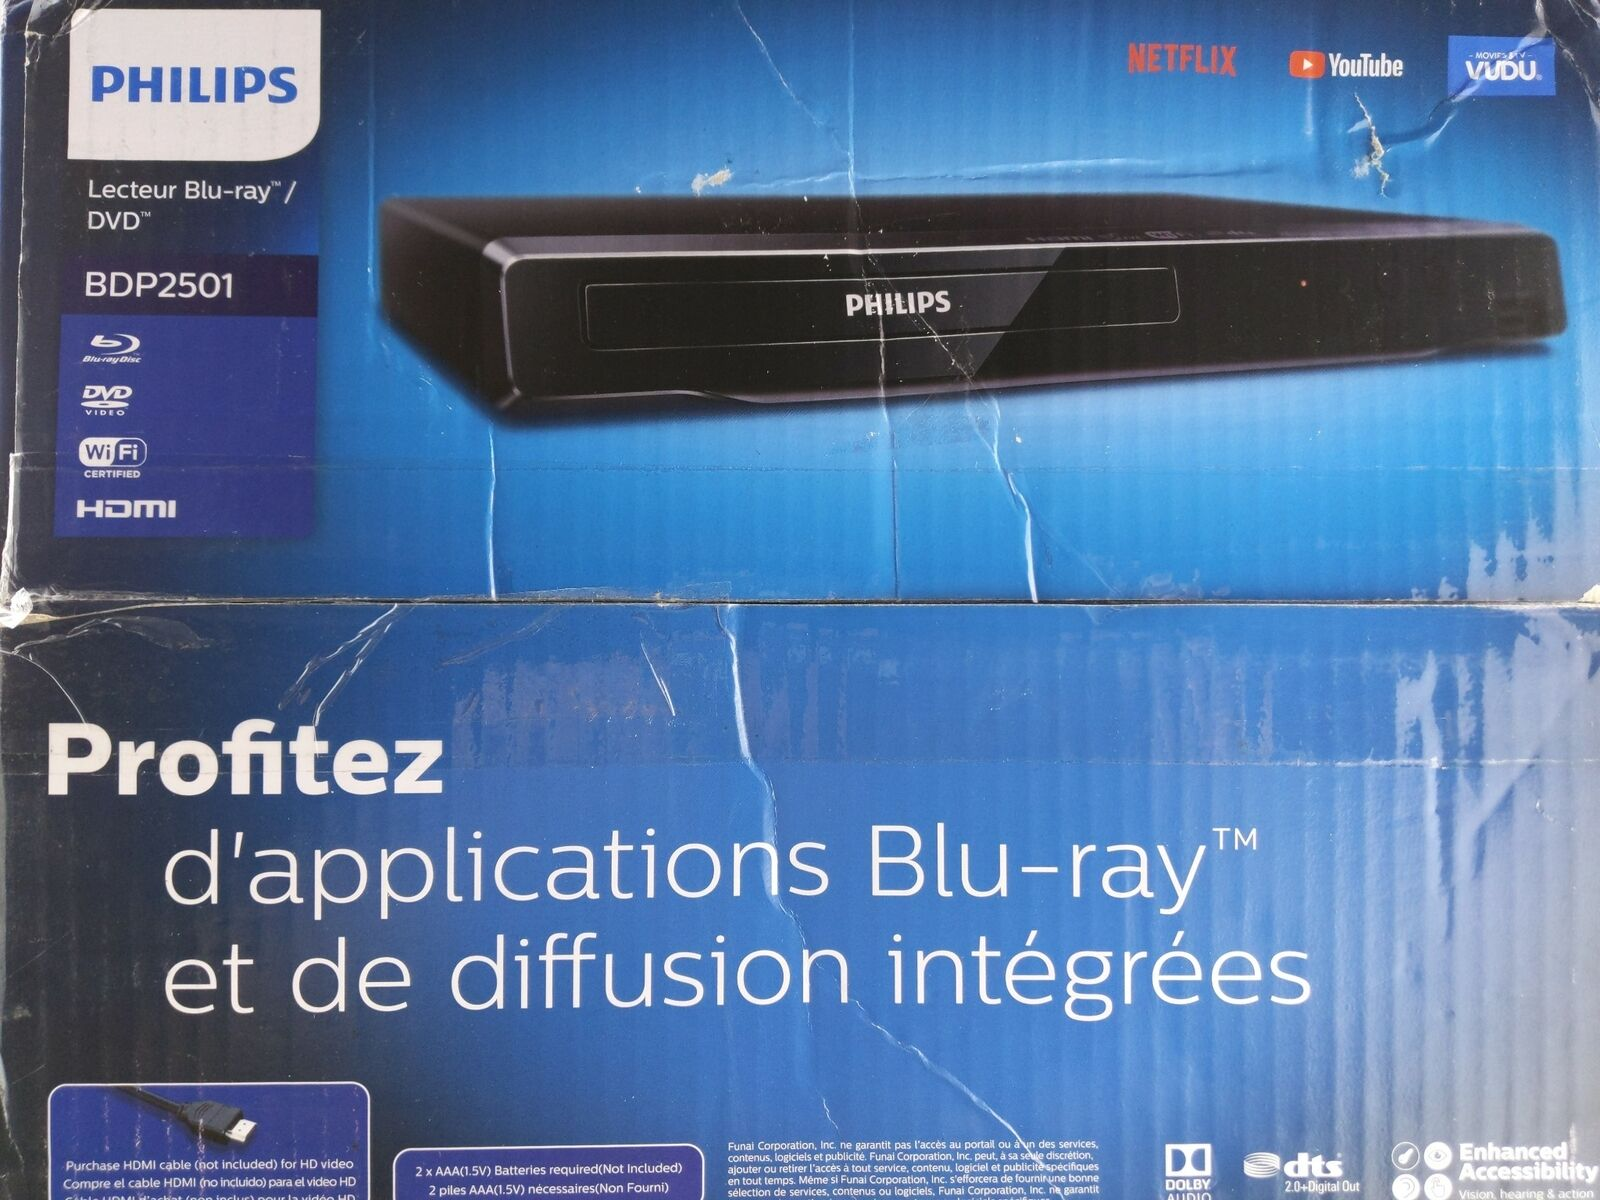 Philips WiFi Streaming Blu-Ray and DVD Player - BDP2501/F7 and dvd philips player streaming wifi